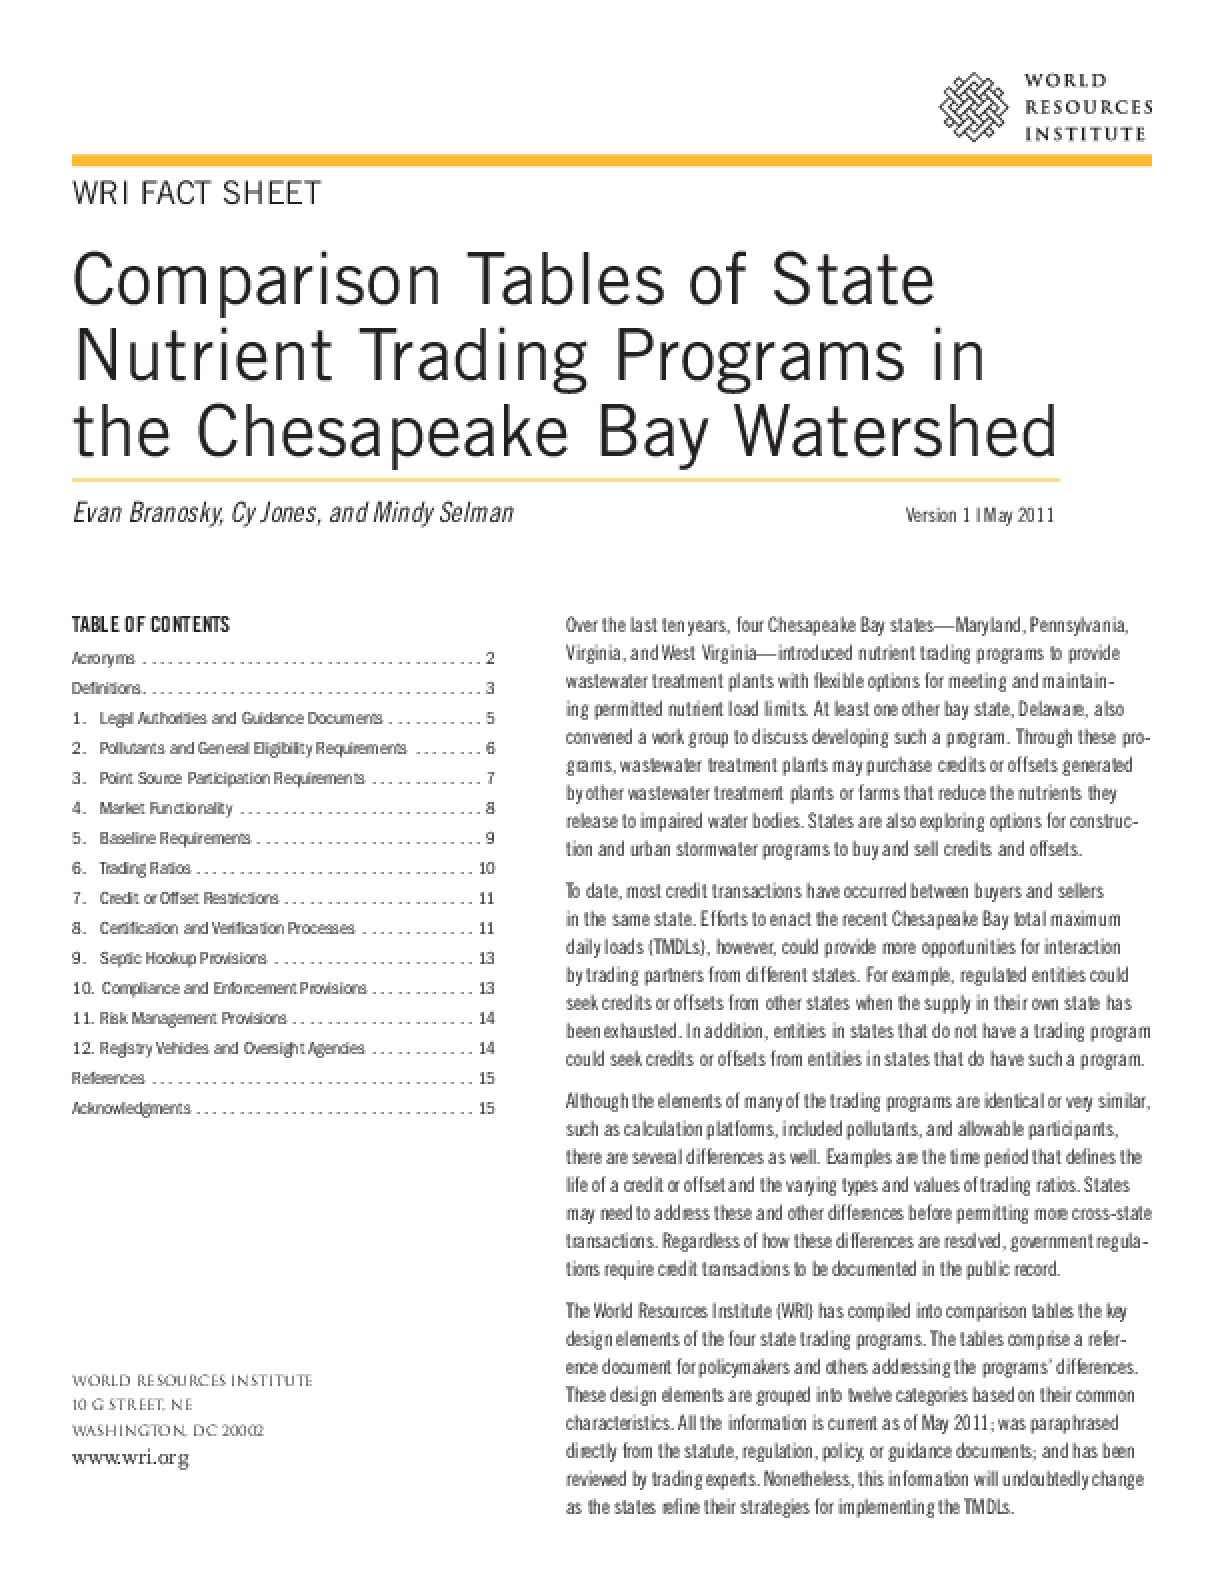 Comparison Tables of State Nutrient Trading Programs in the Chesapeake Bay Watershed